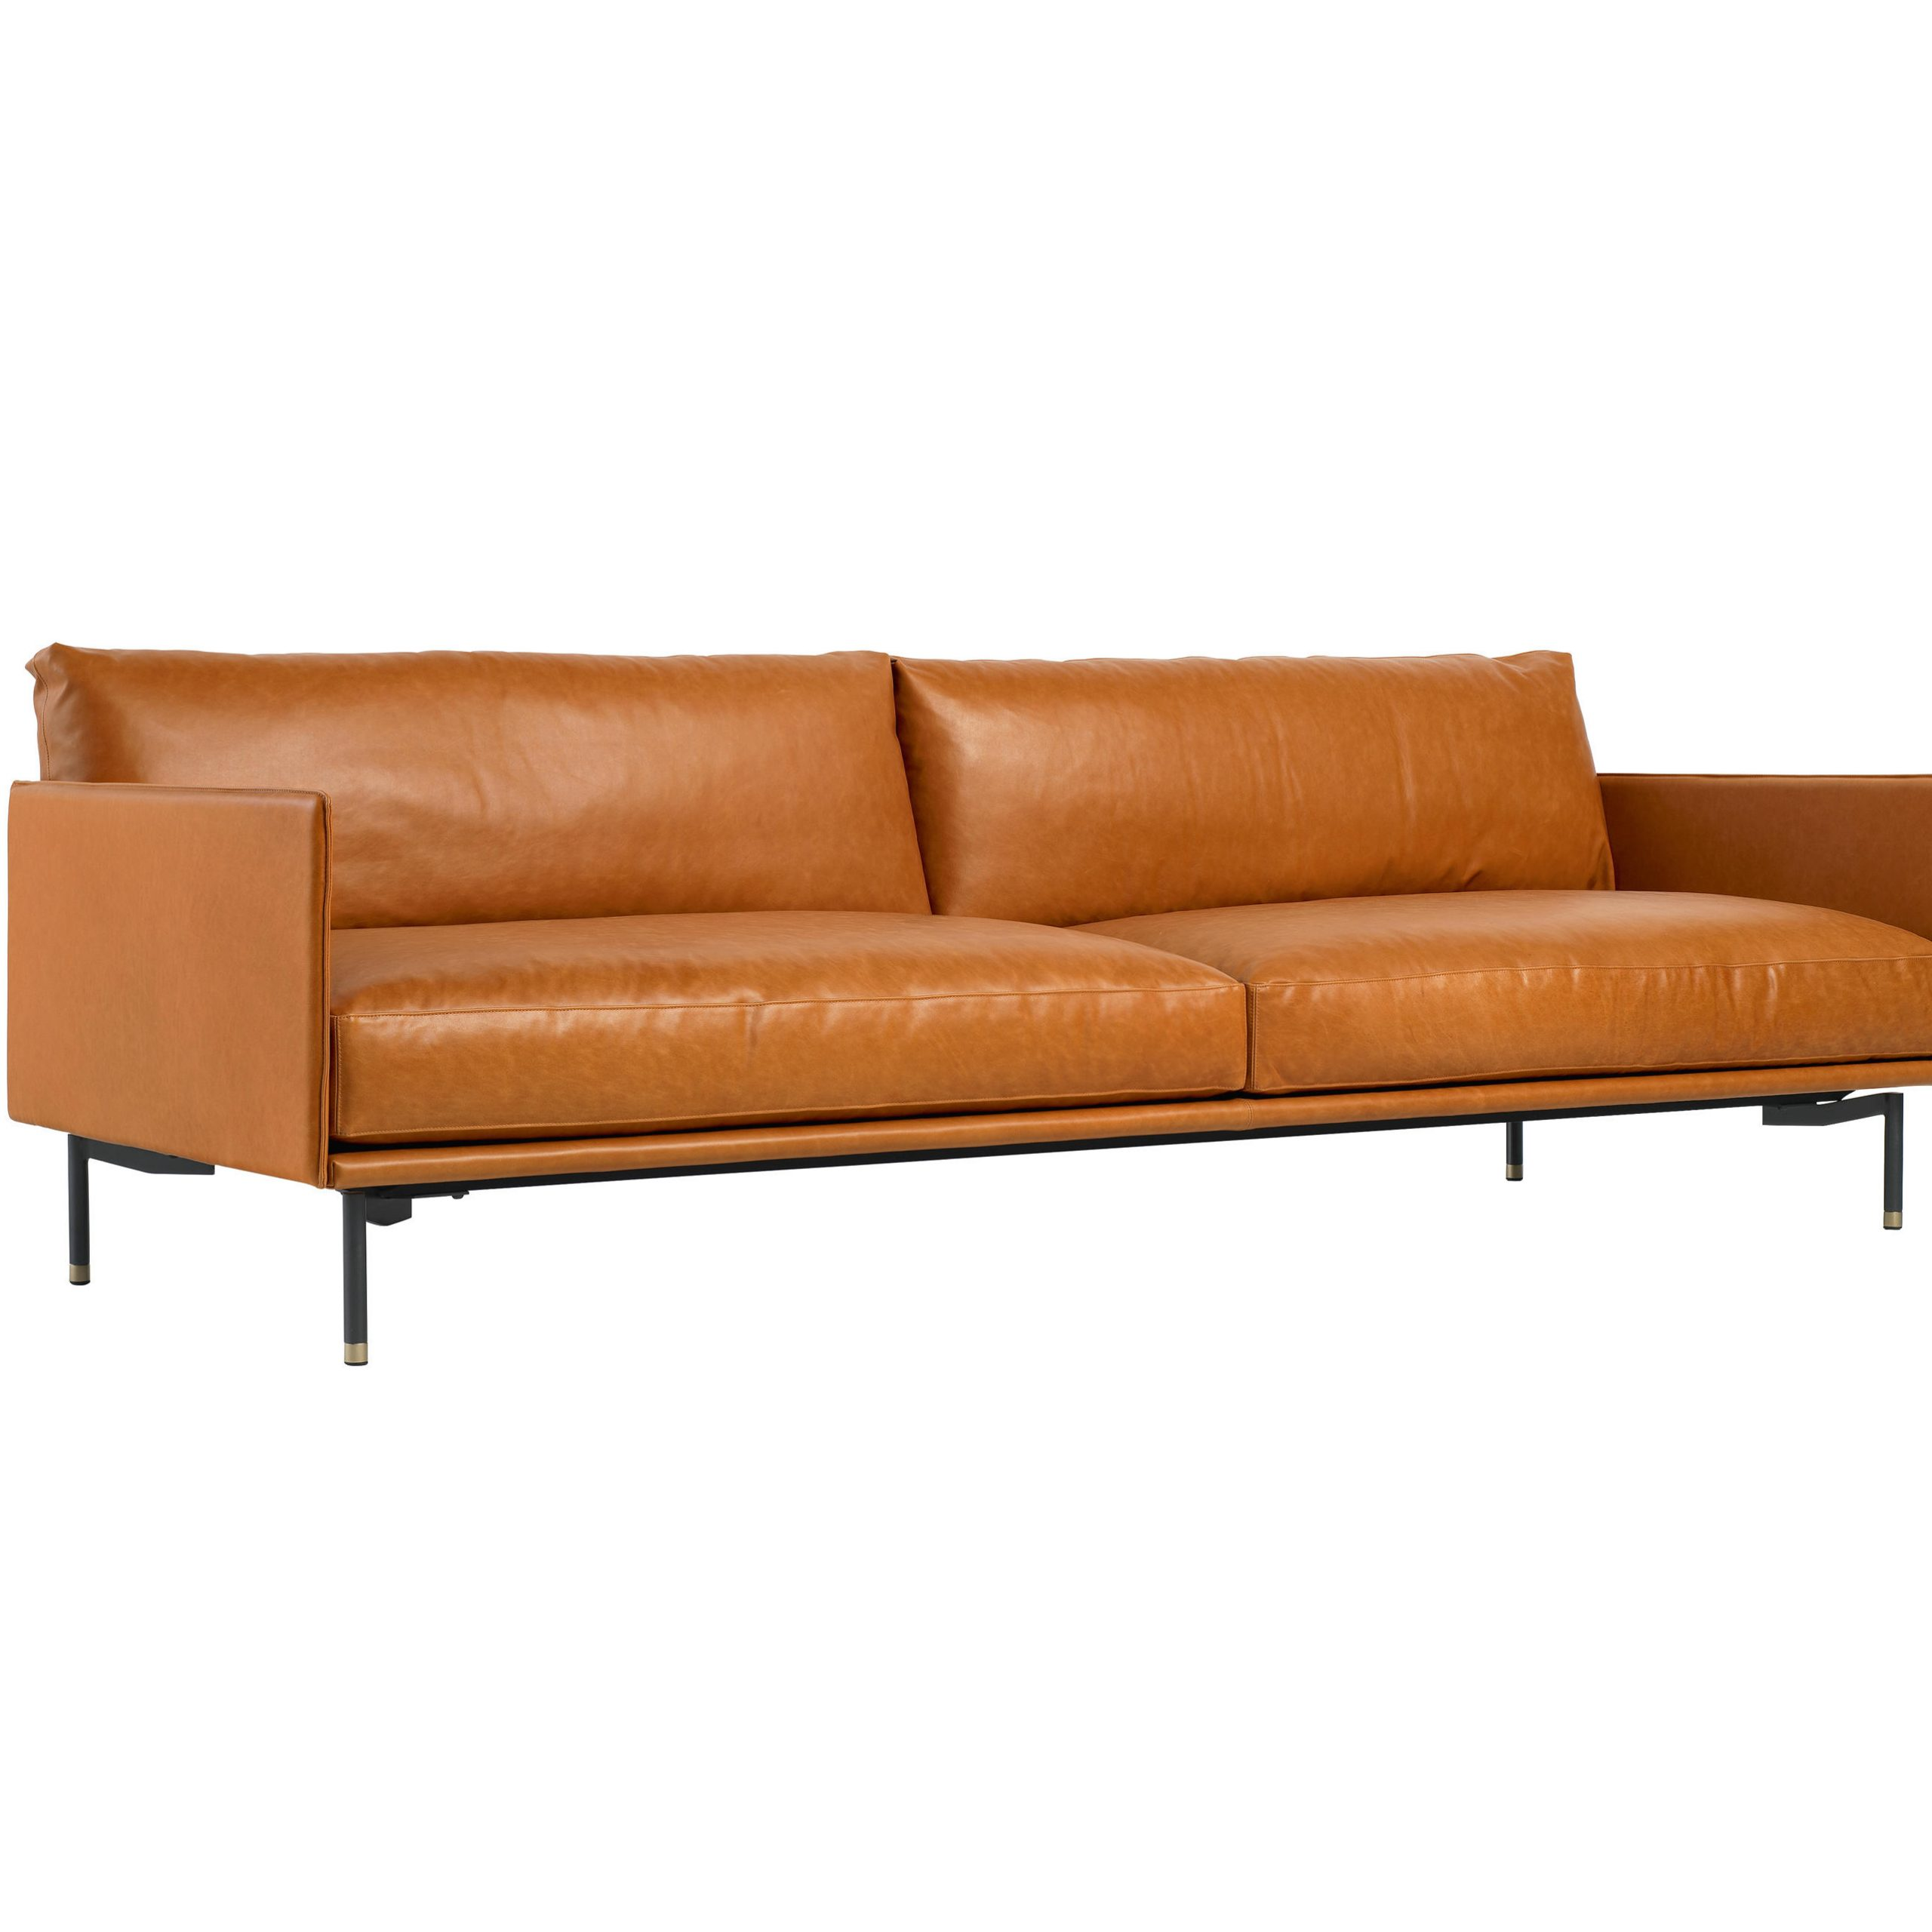 Architonic Regarding Best And Newest Wilton Fabric Sectional Sofas (View 1 of 20)